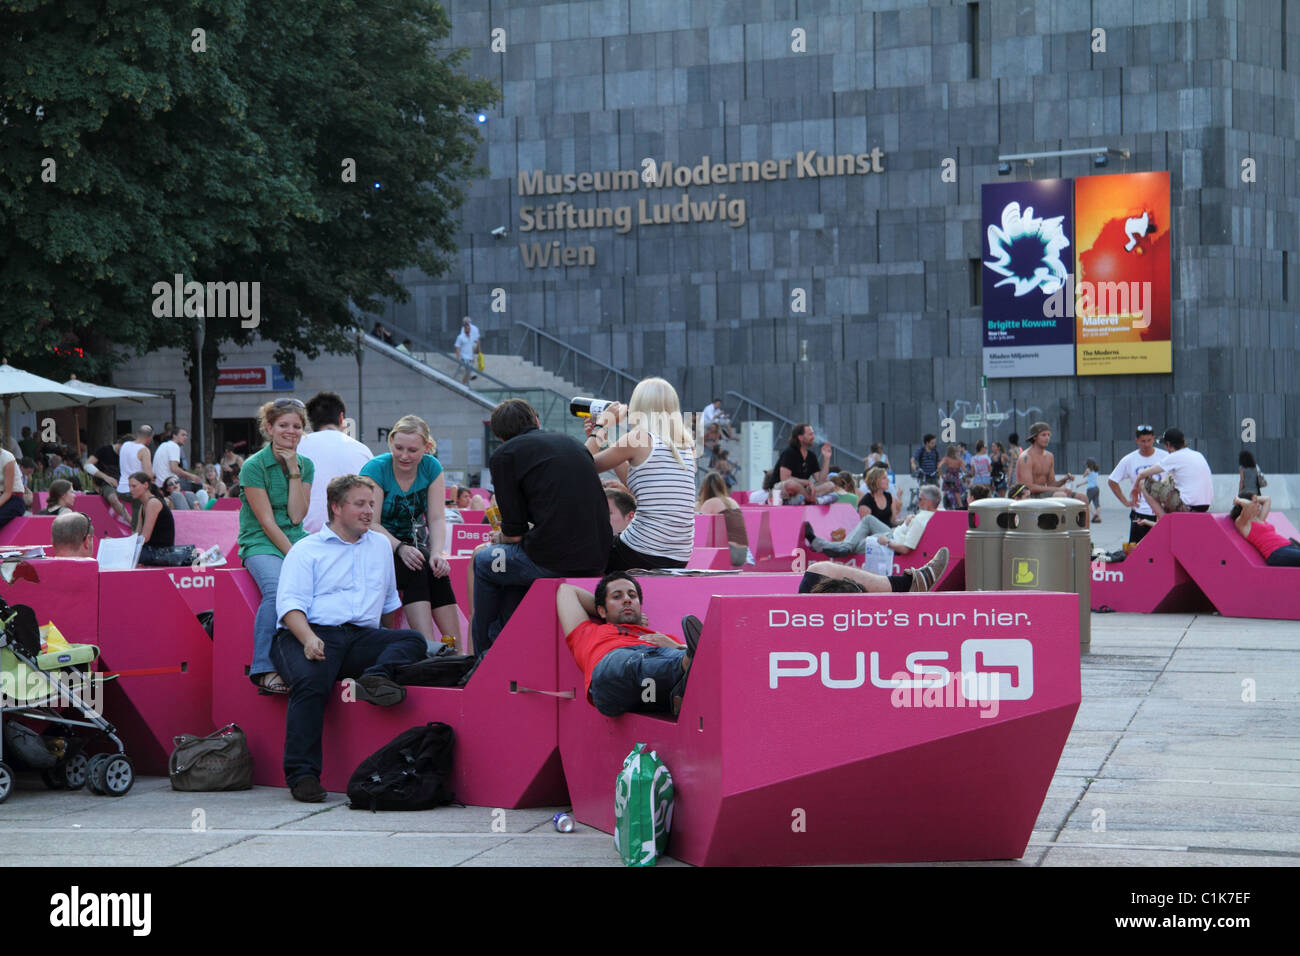 People relaxing outside Museum Moderner Kunst Stiftung Ludwig, Museums Quartier - Stock Image